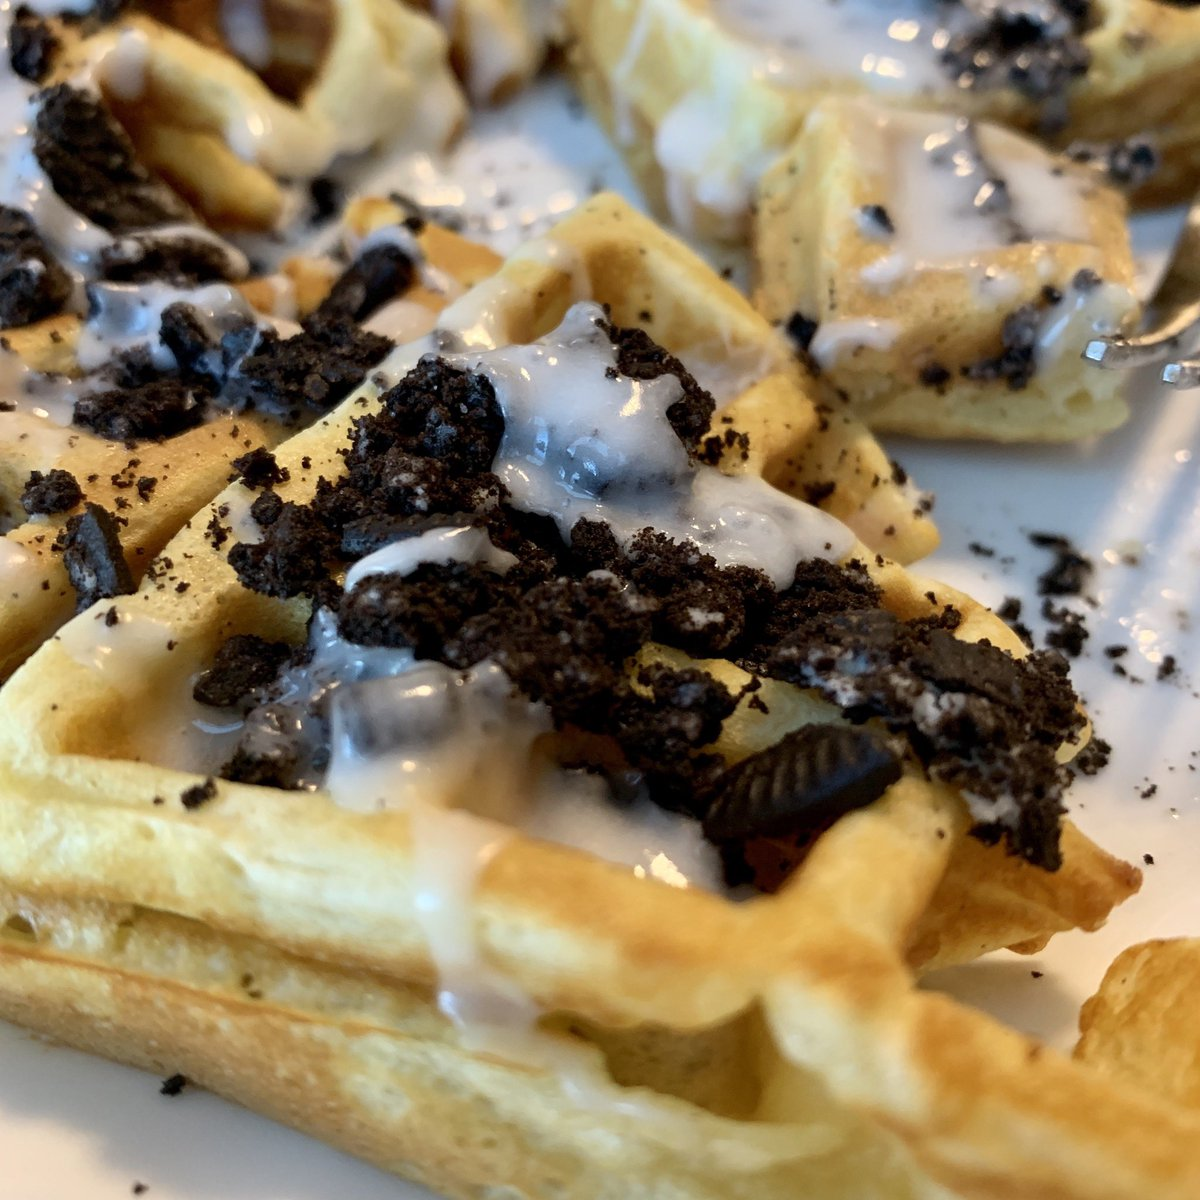 Without Oreos? Waffles With @oreo? Breakfast of champions. #oreo #breakfast #homecooking